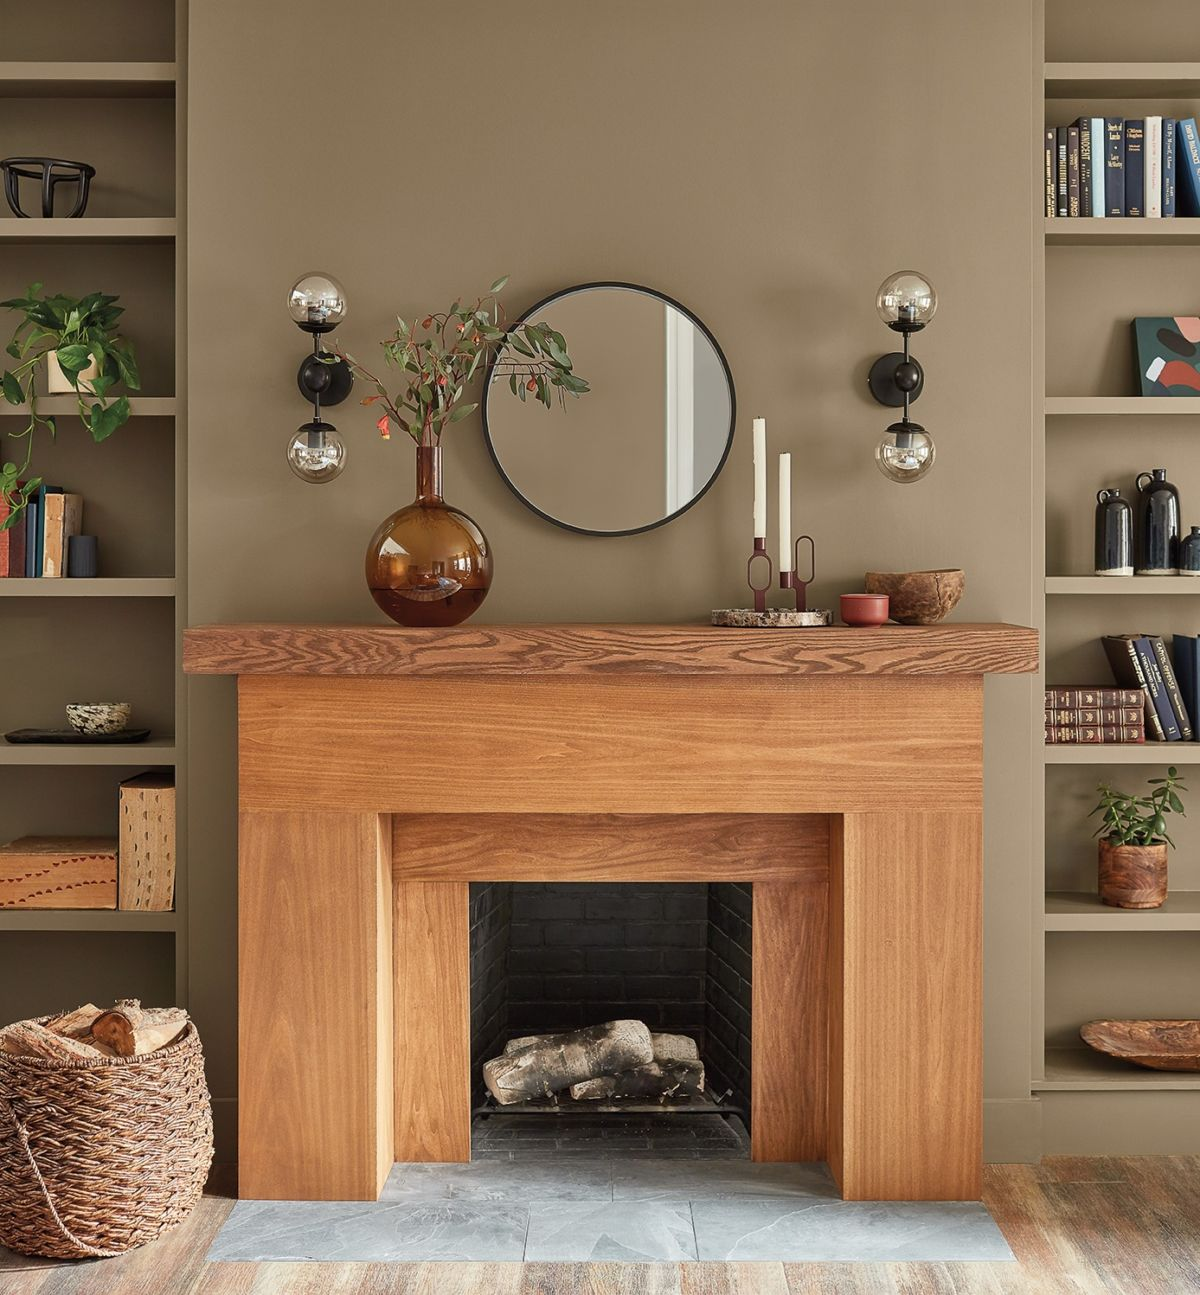 wooden fireplace, rounded mirror above